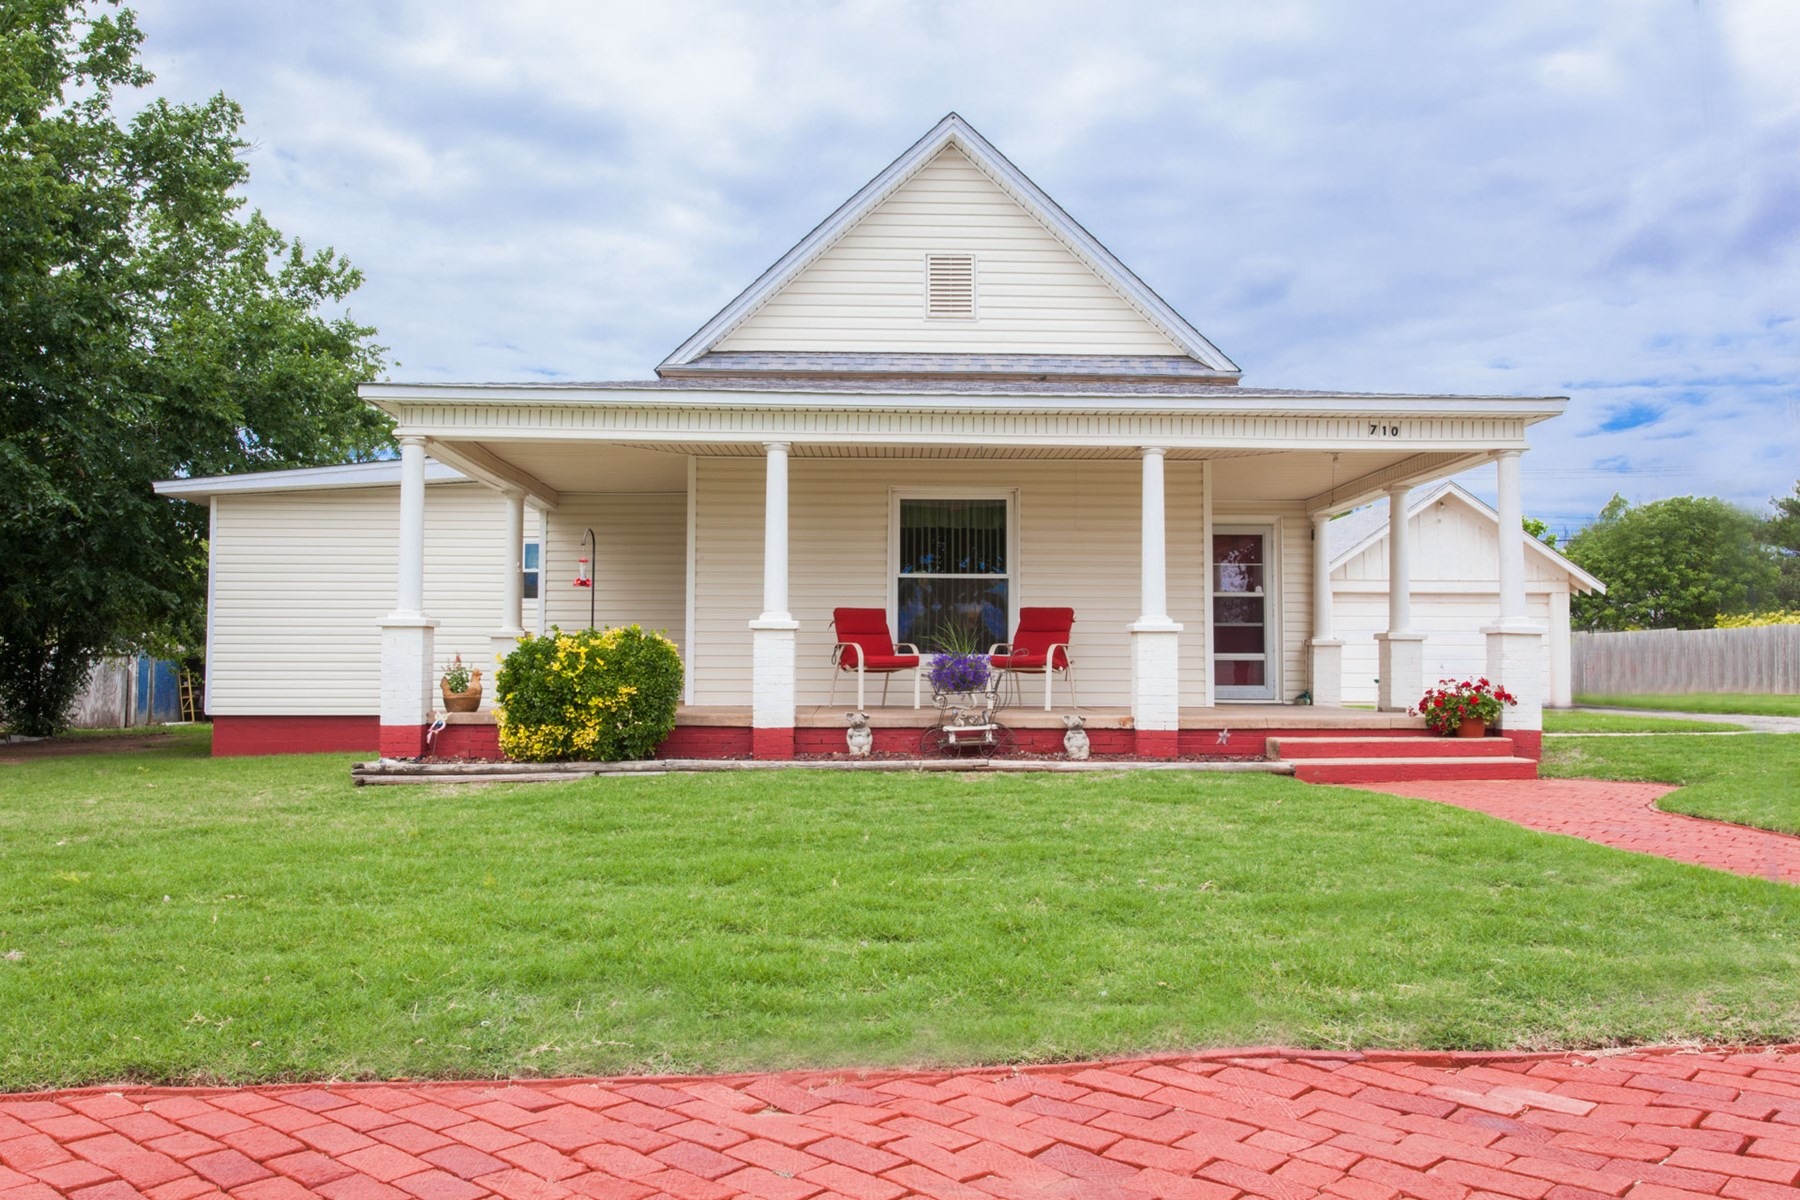 Country Home for Sale, Custer City, OK 73639